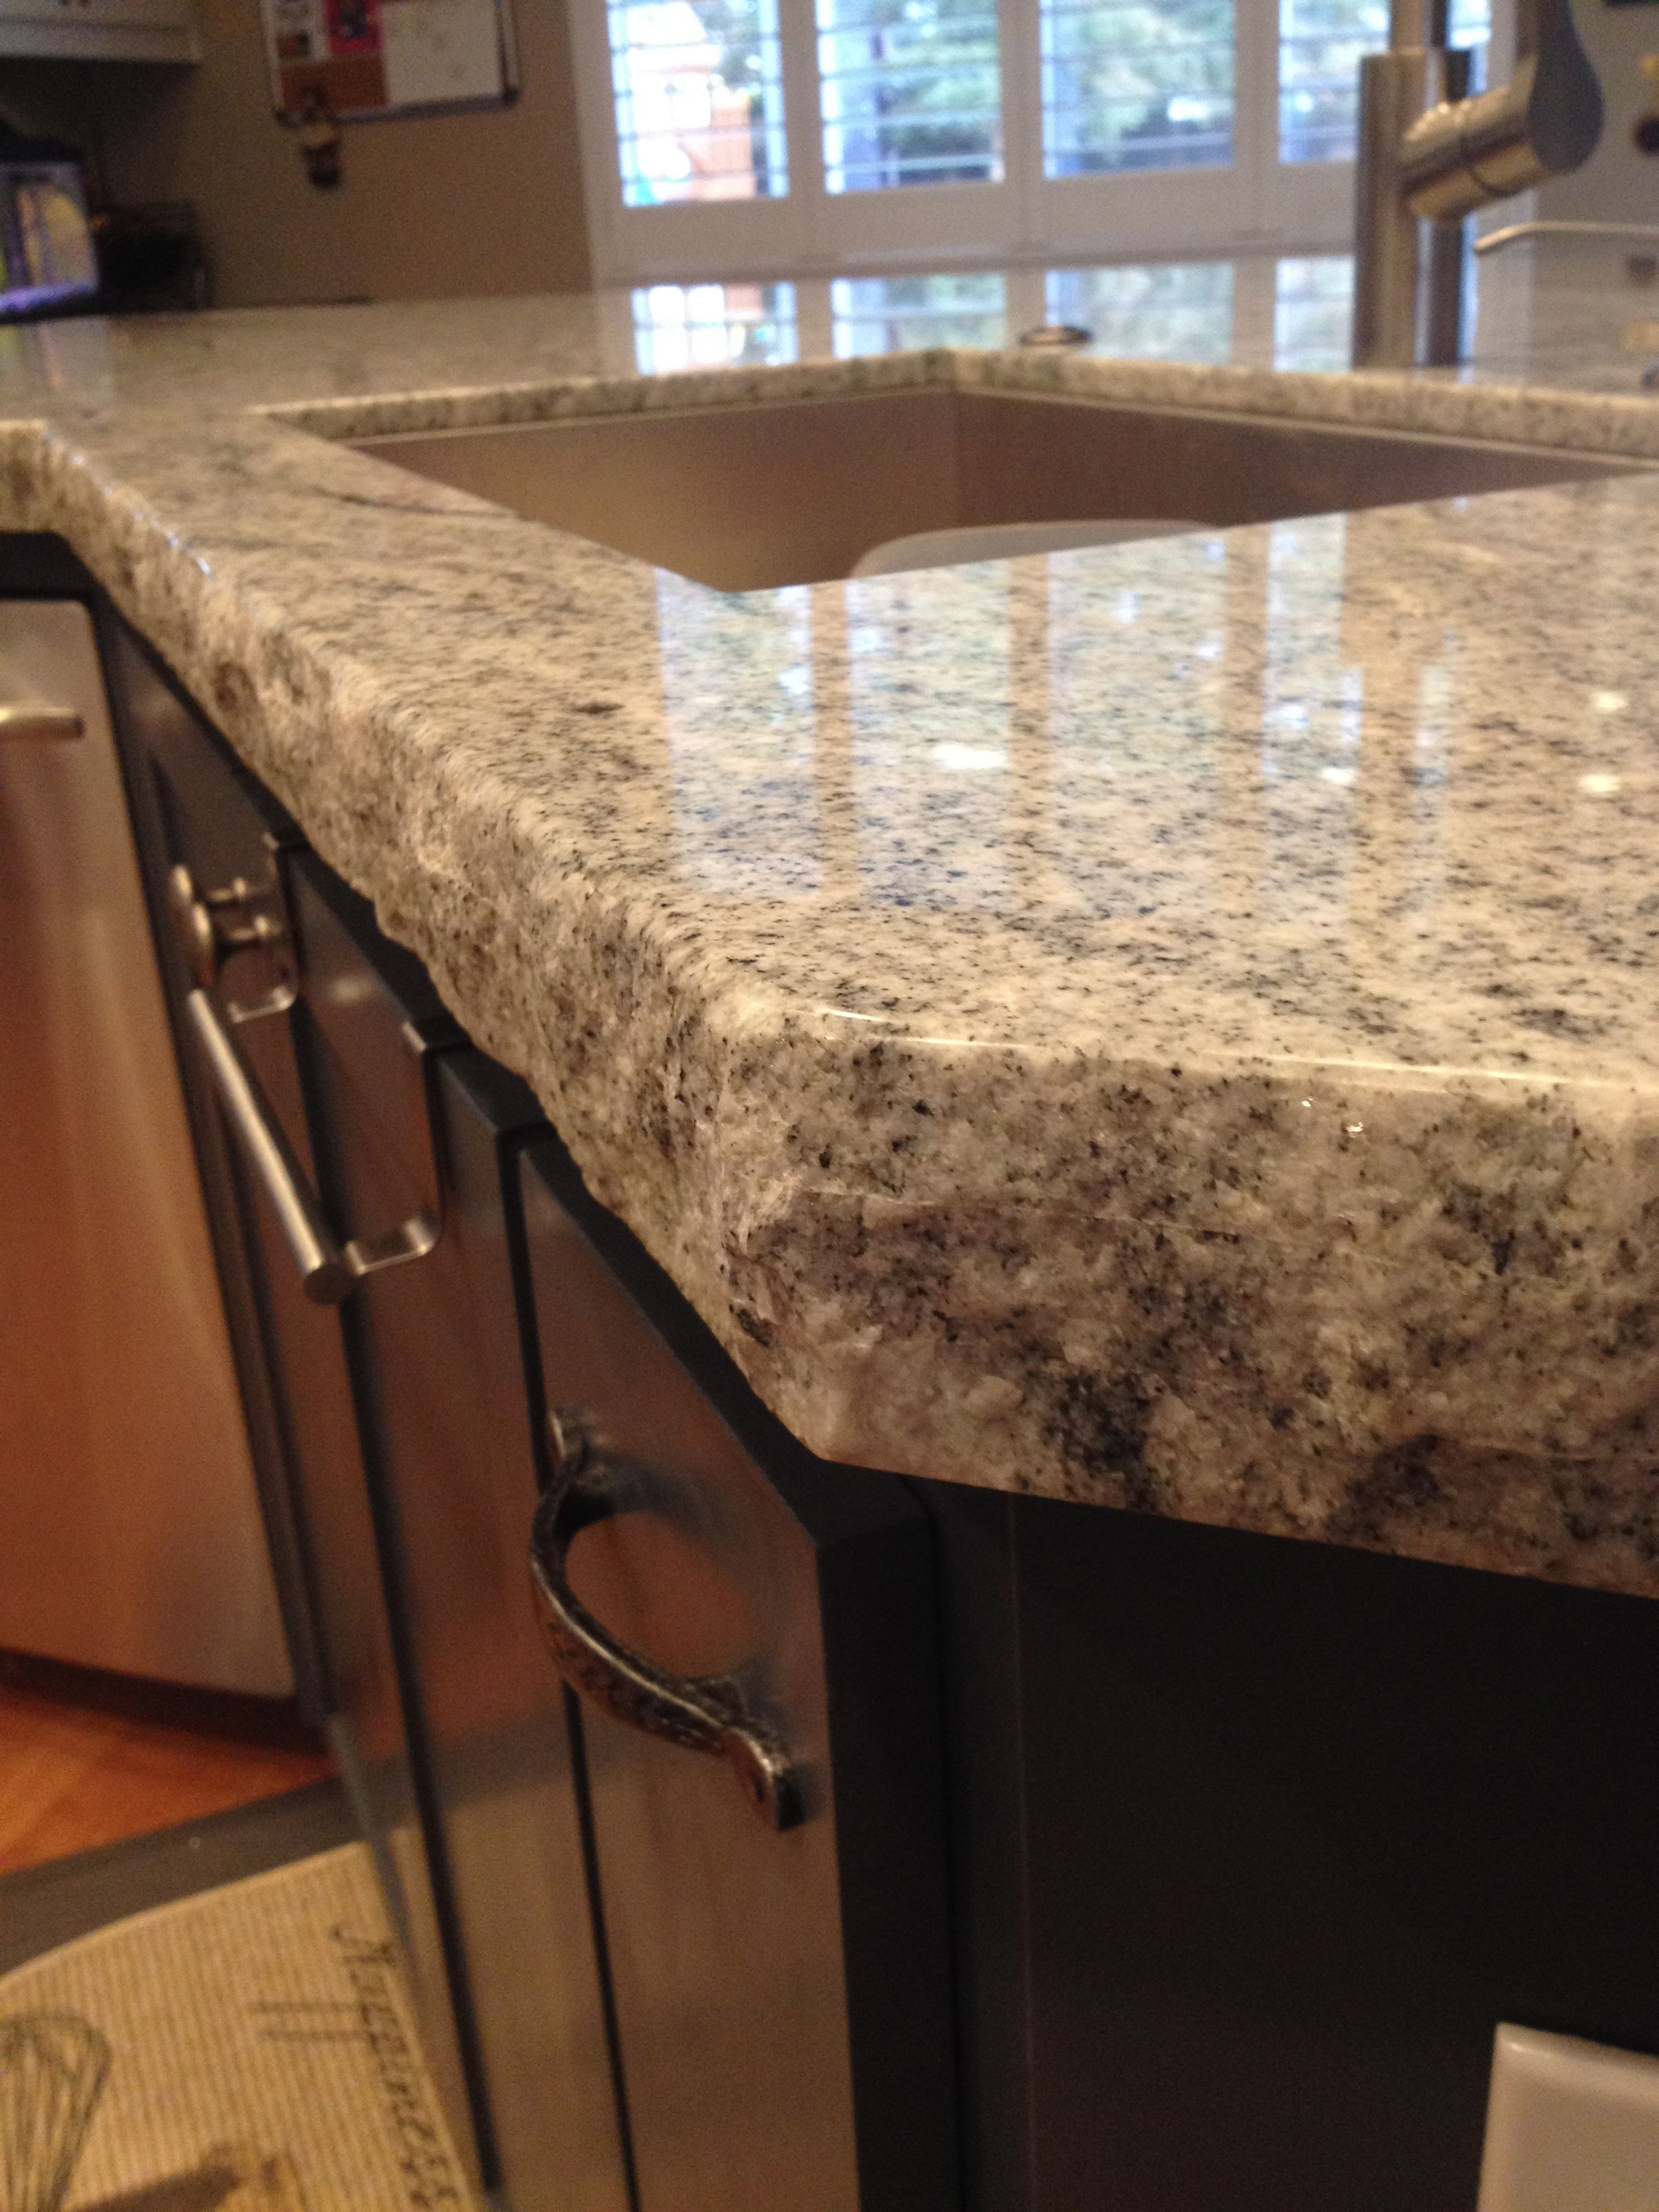 We Love The Rustic Outdoorsy Look With This Double Chisel Edge Granite Counter Top Nice Part Is You Never Have To Worry About Someone Chipping It